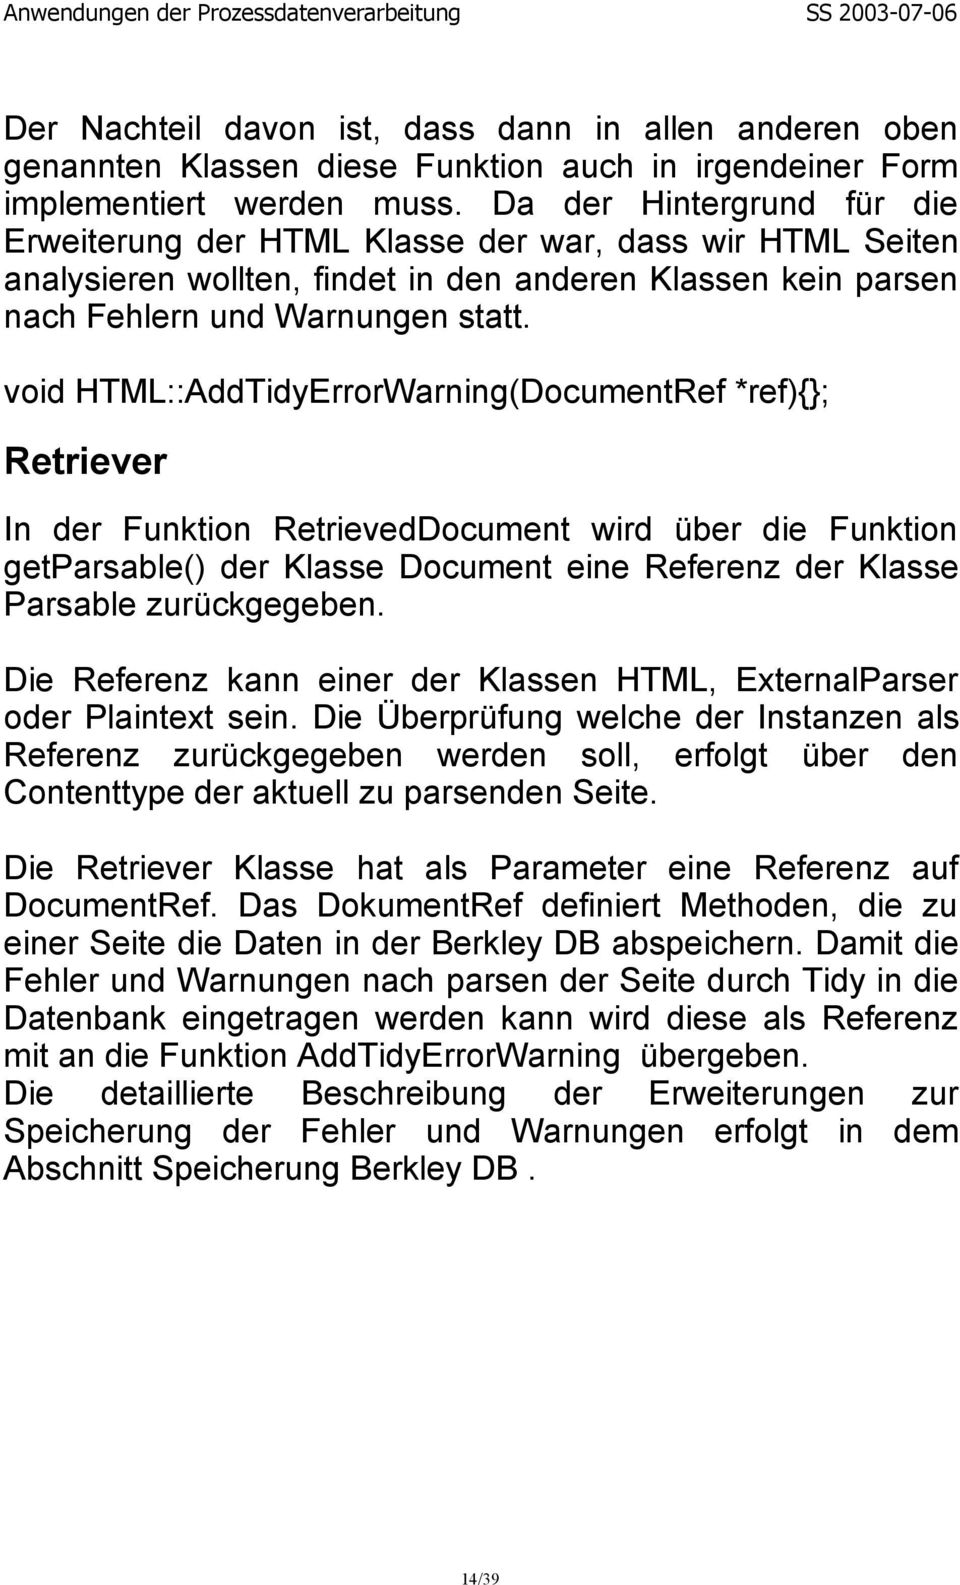 void HTML::AddTidyErrorWarning(DocumentRef *ref){}; Retriever In der Funktion RetrievedDocument wird über die Funktion getparsable() der Klasse Document eine Referenz der Klasse Parsable